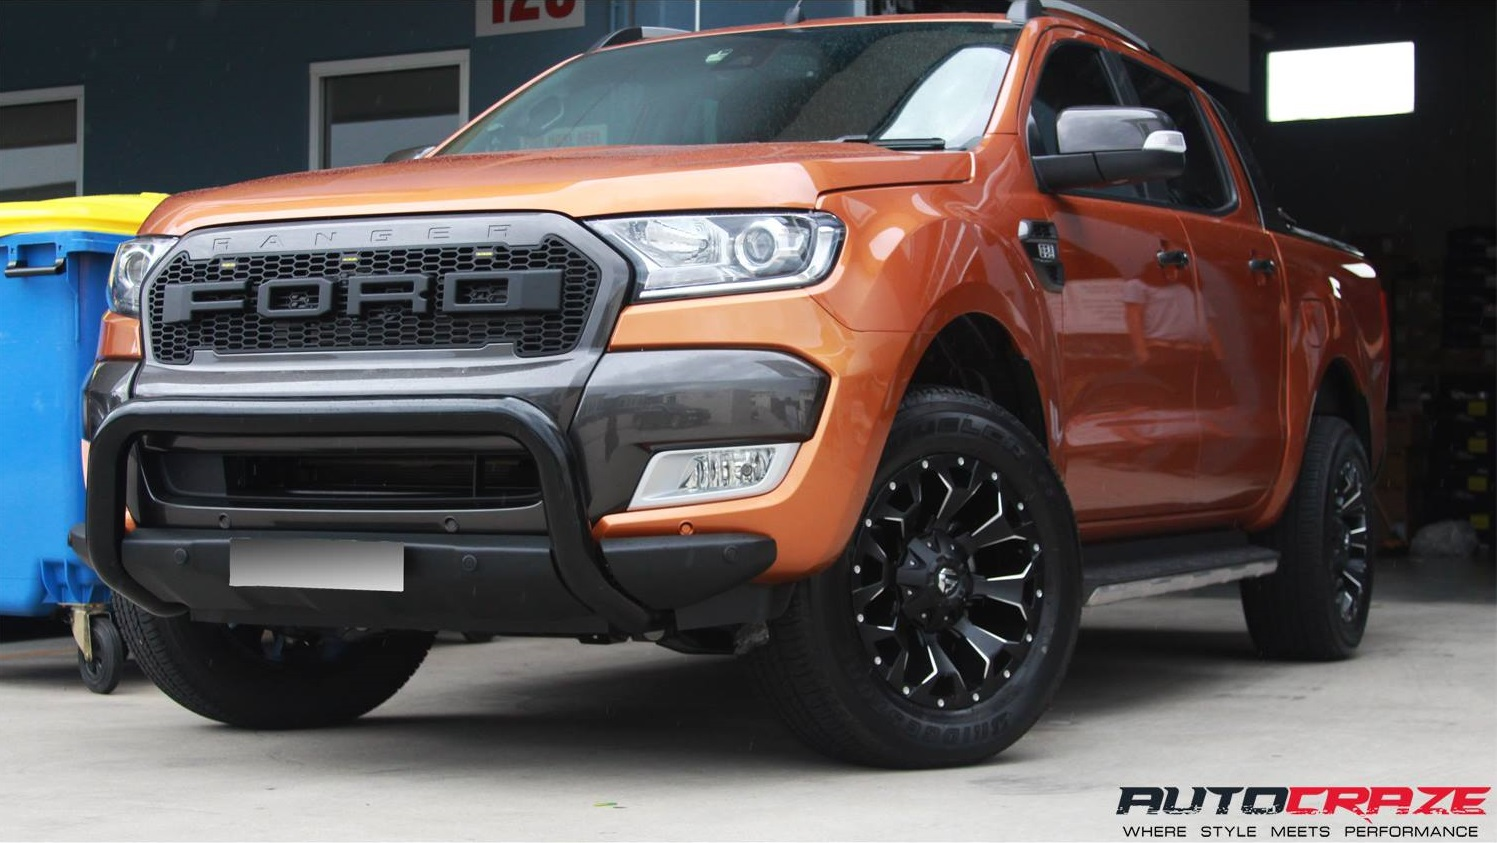 Ford Ranger Wheels Size Buy Ranger Rims And Tyres For Sale